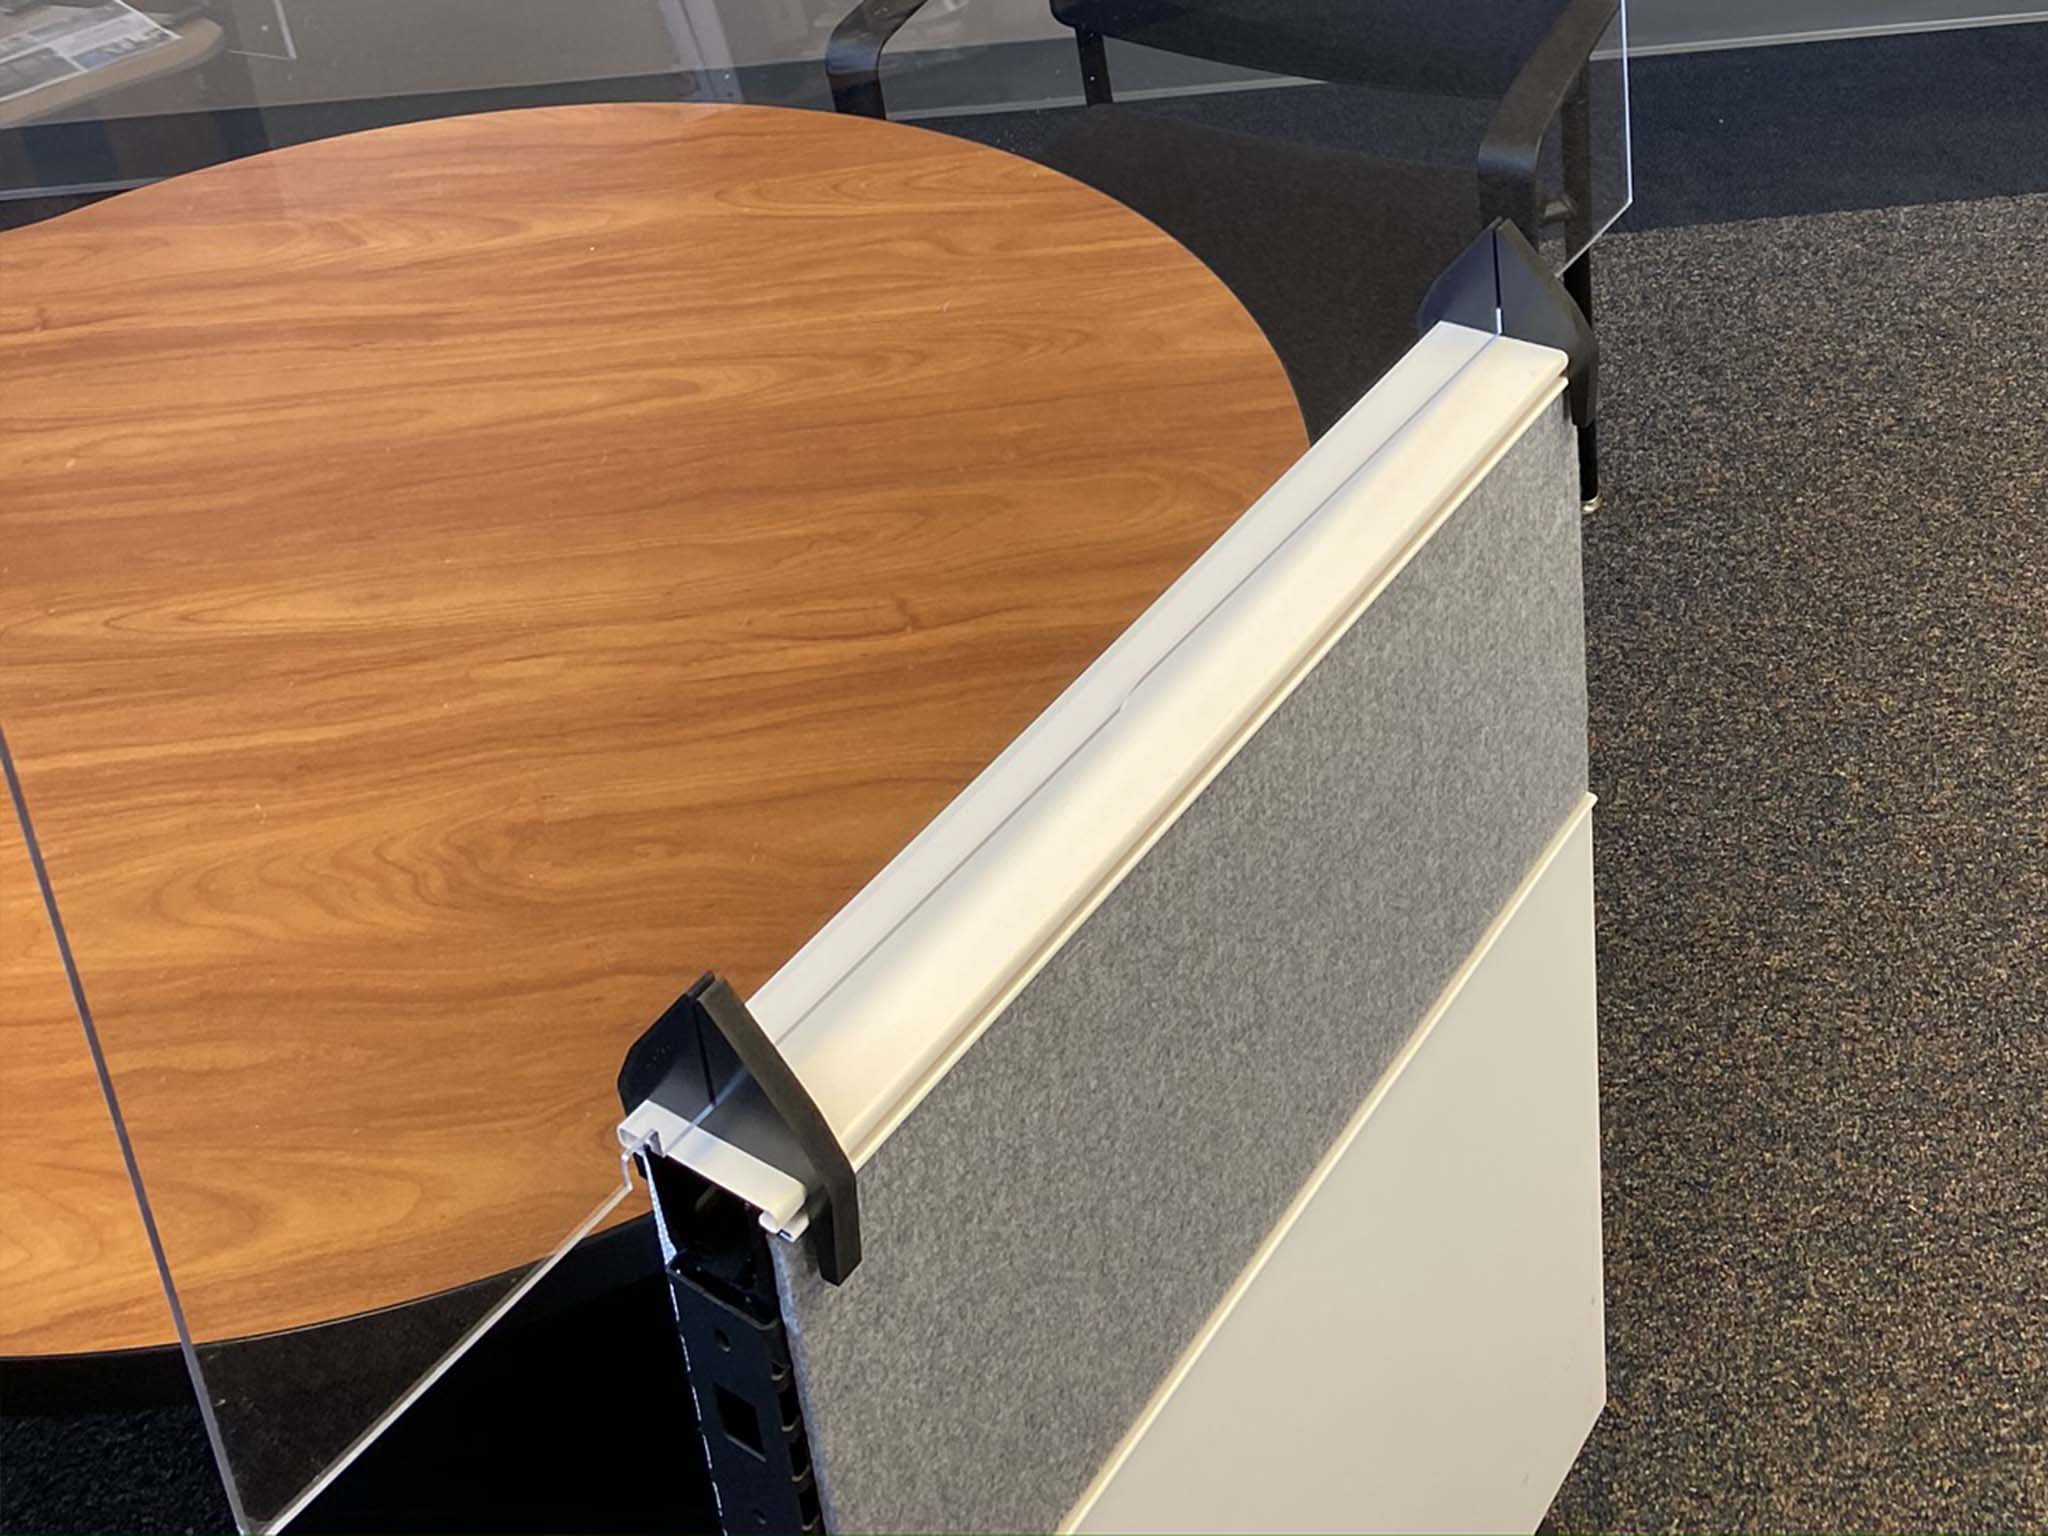 PlexiGuard Panel Top Desk Divider Shield